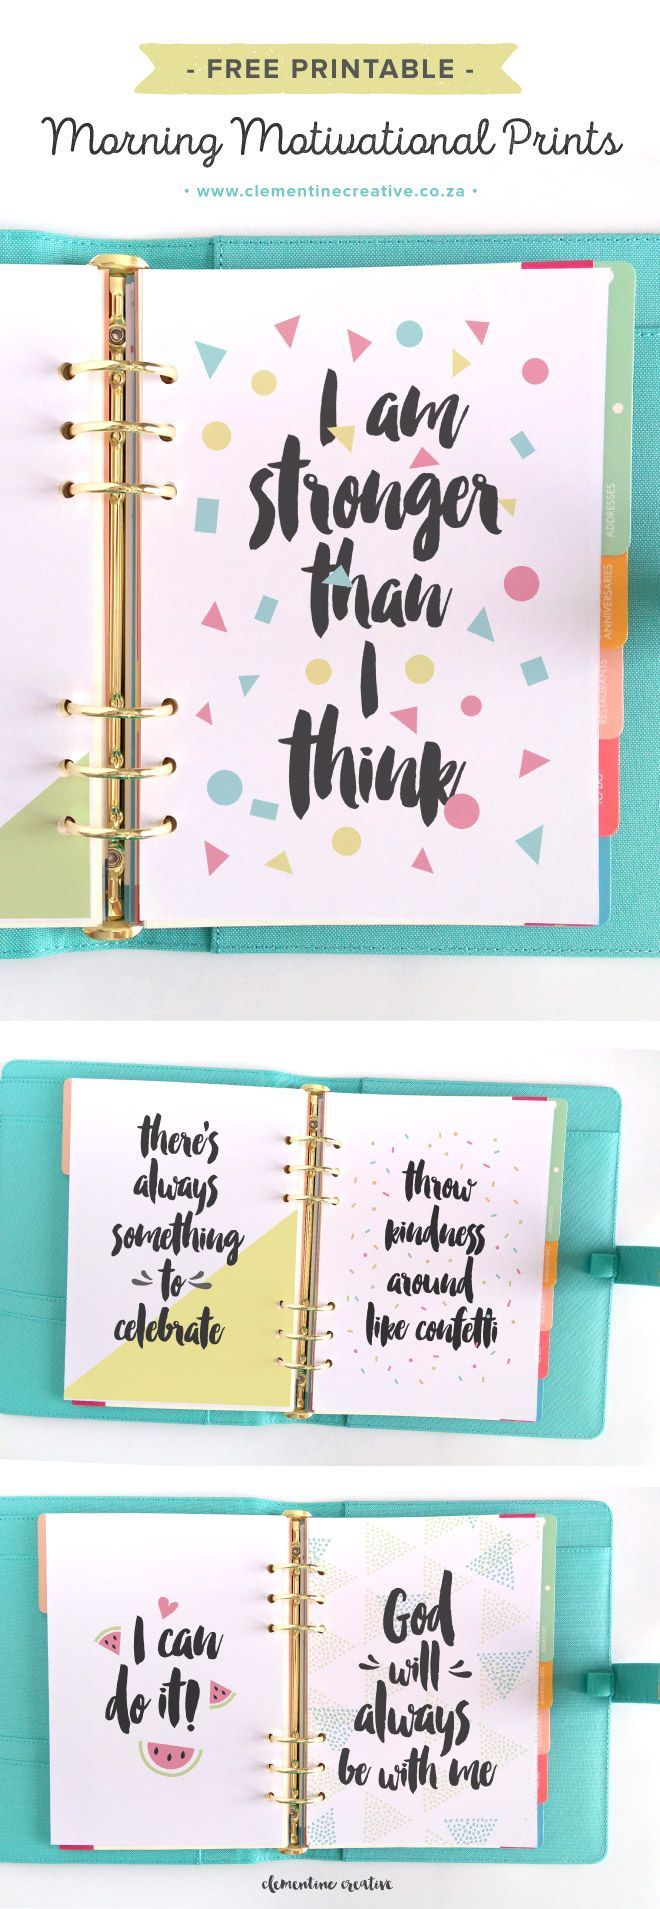 Morning Motivational Prints {Free Printable} - Clementine Creative | DIY Printable Stationery Más